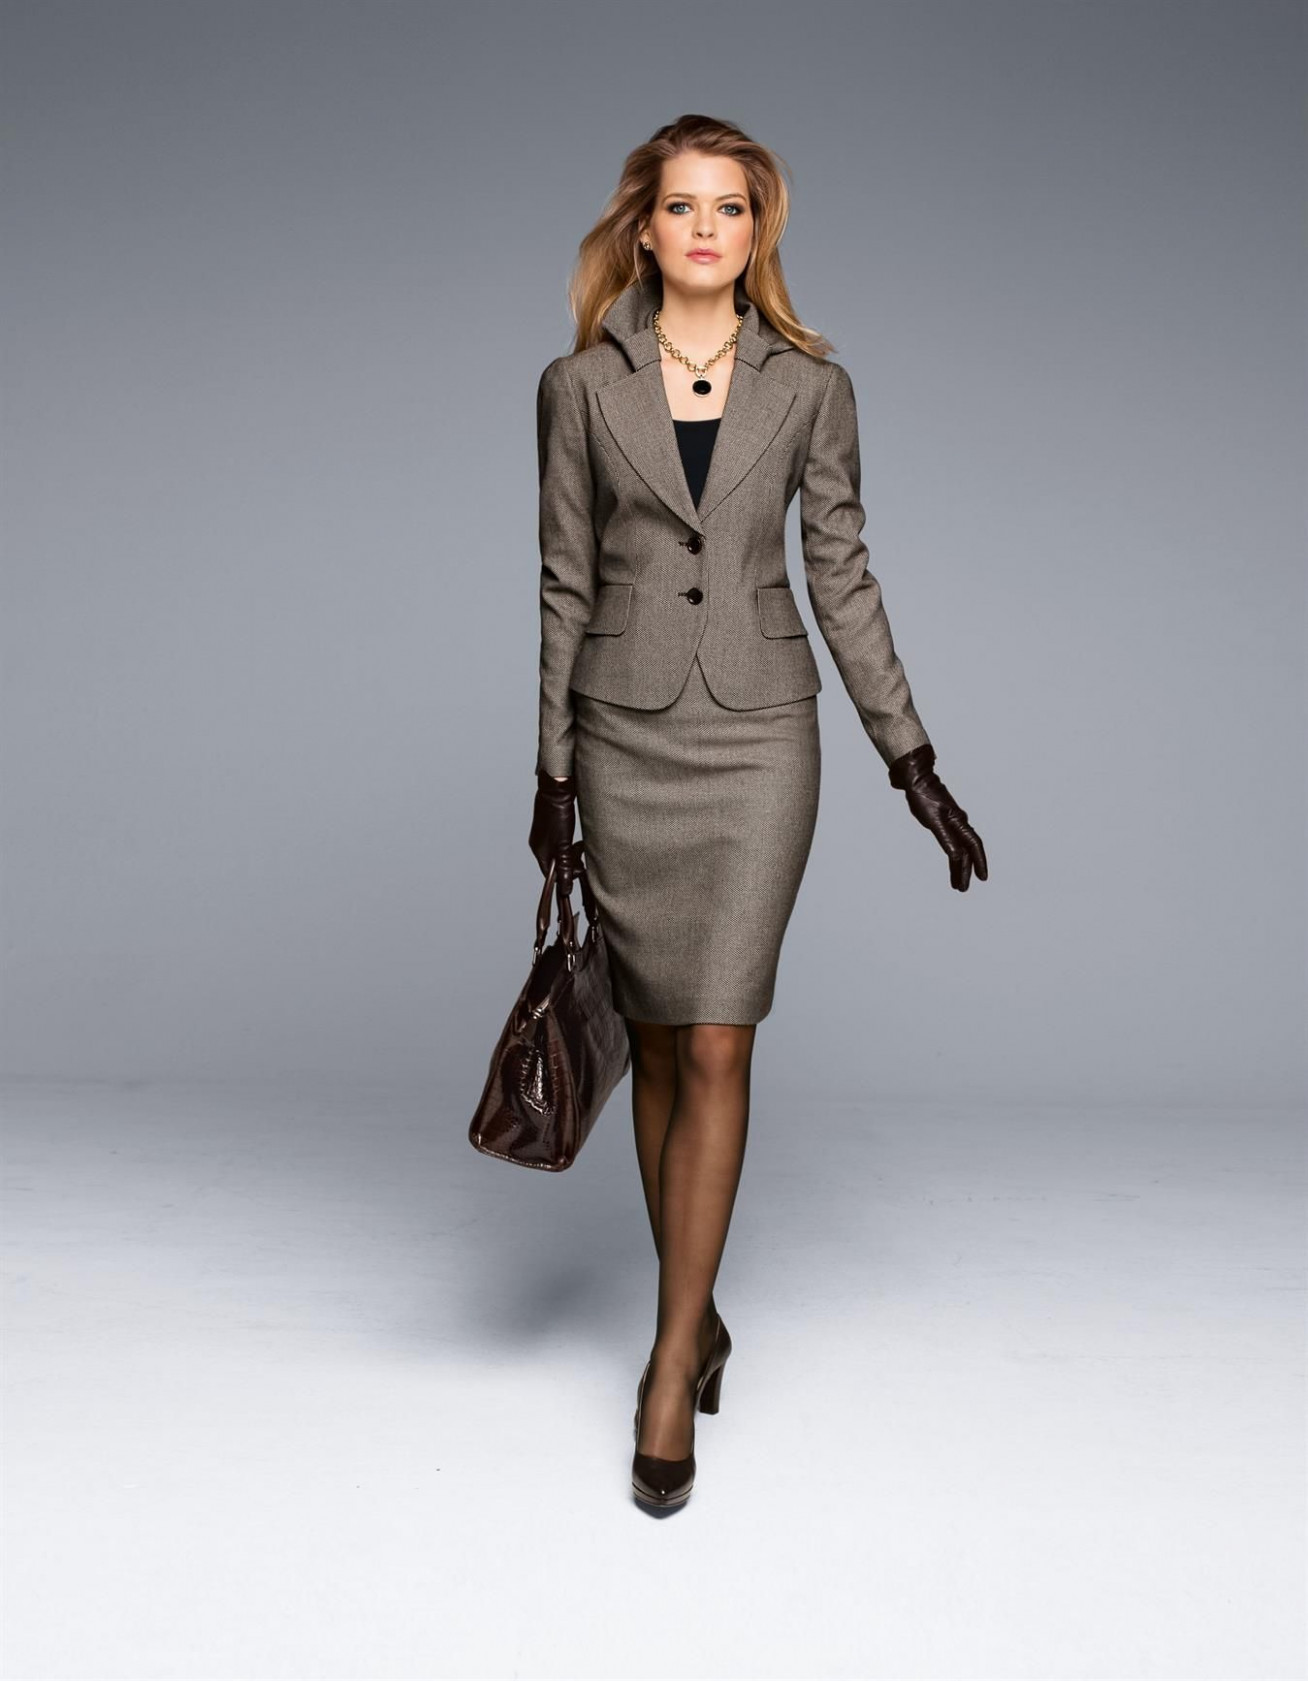 madeleine office style suits for women, office fashion women business kleidung frauen